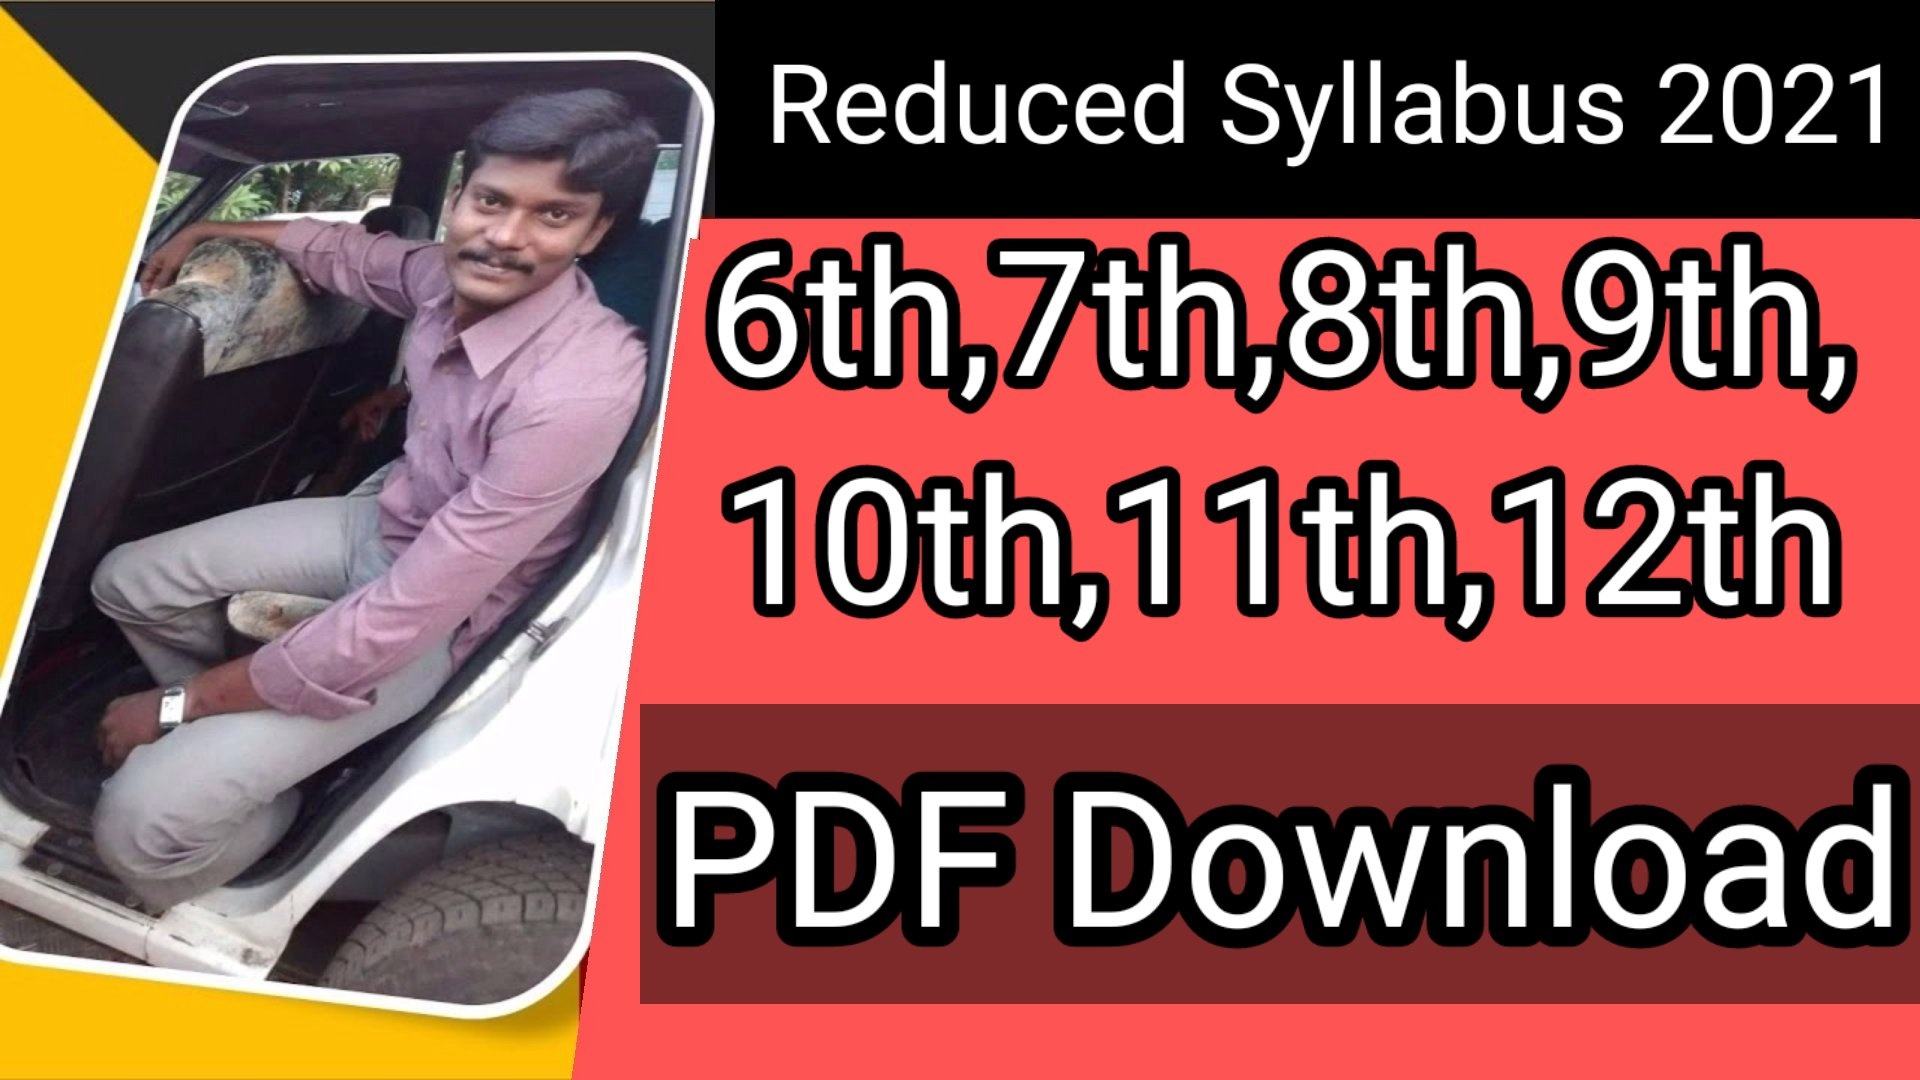 Reduced syllabus, Guide,Study materials,Model Question papers PDF Download 2021